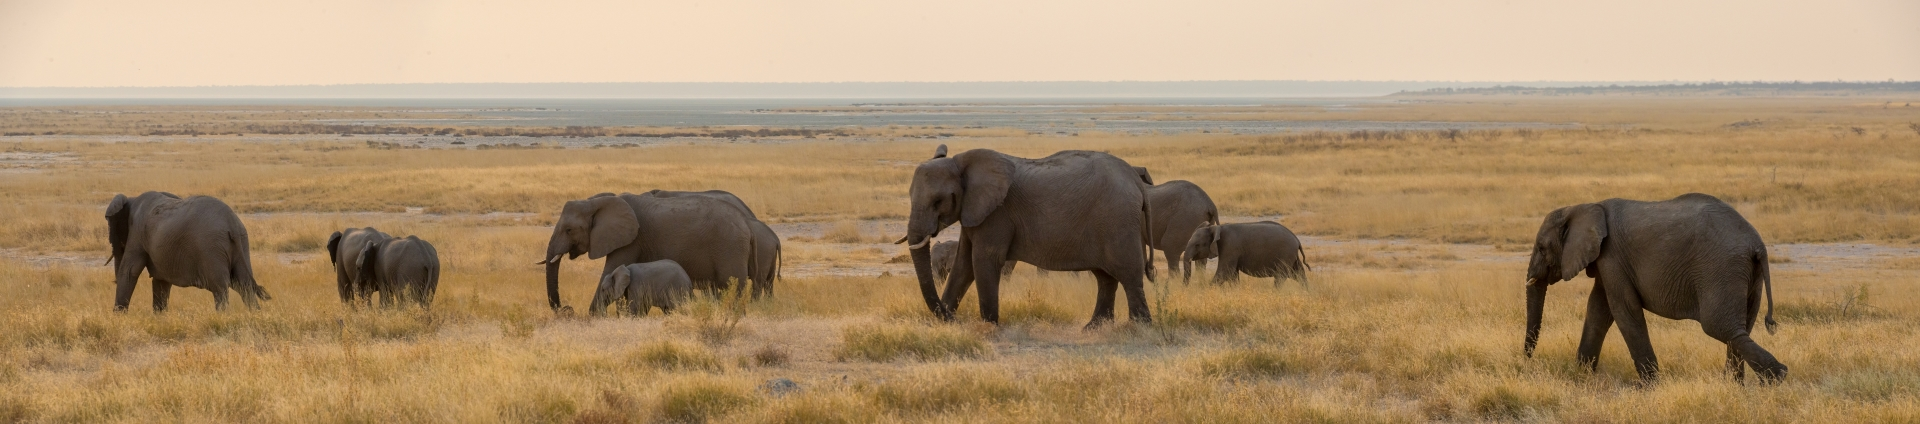 'In arid Etosha National Park distance to water is critical to elephants well-being' (TB 1 Place) by Cindee Beechwood - MR